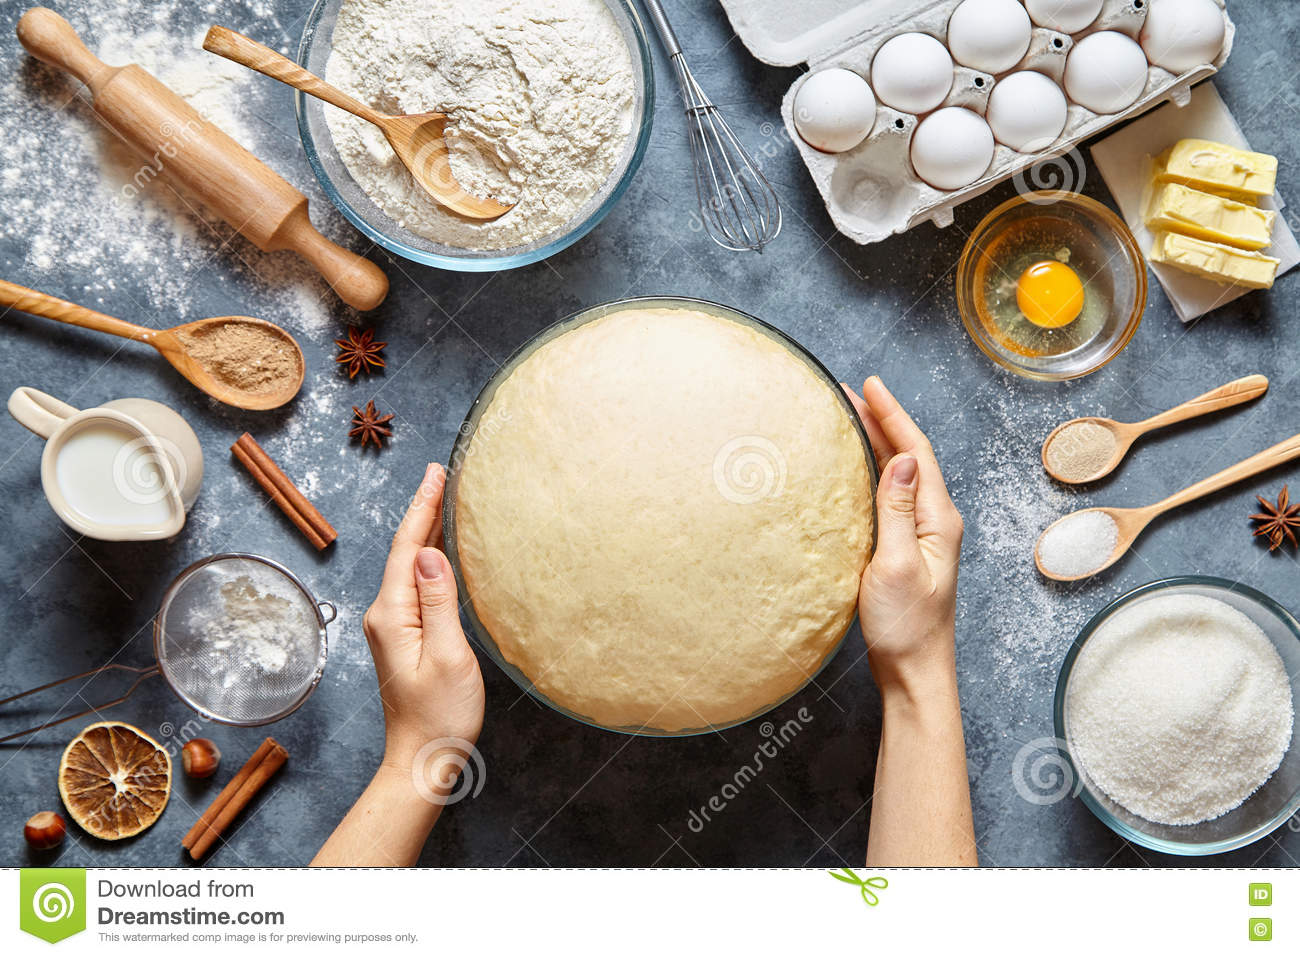 Hands working with dough preparation recipe bread, pizza or pie making ingridients, food flat lay